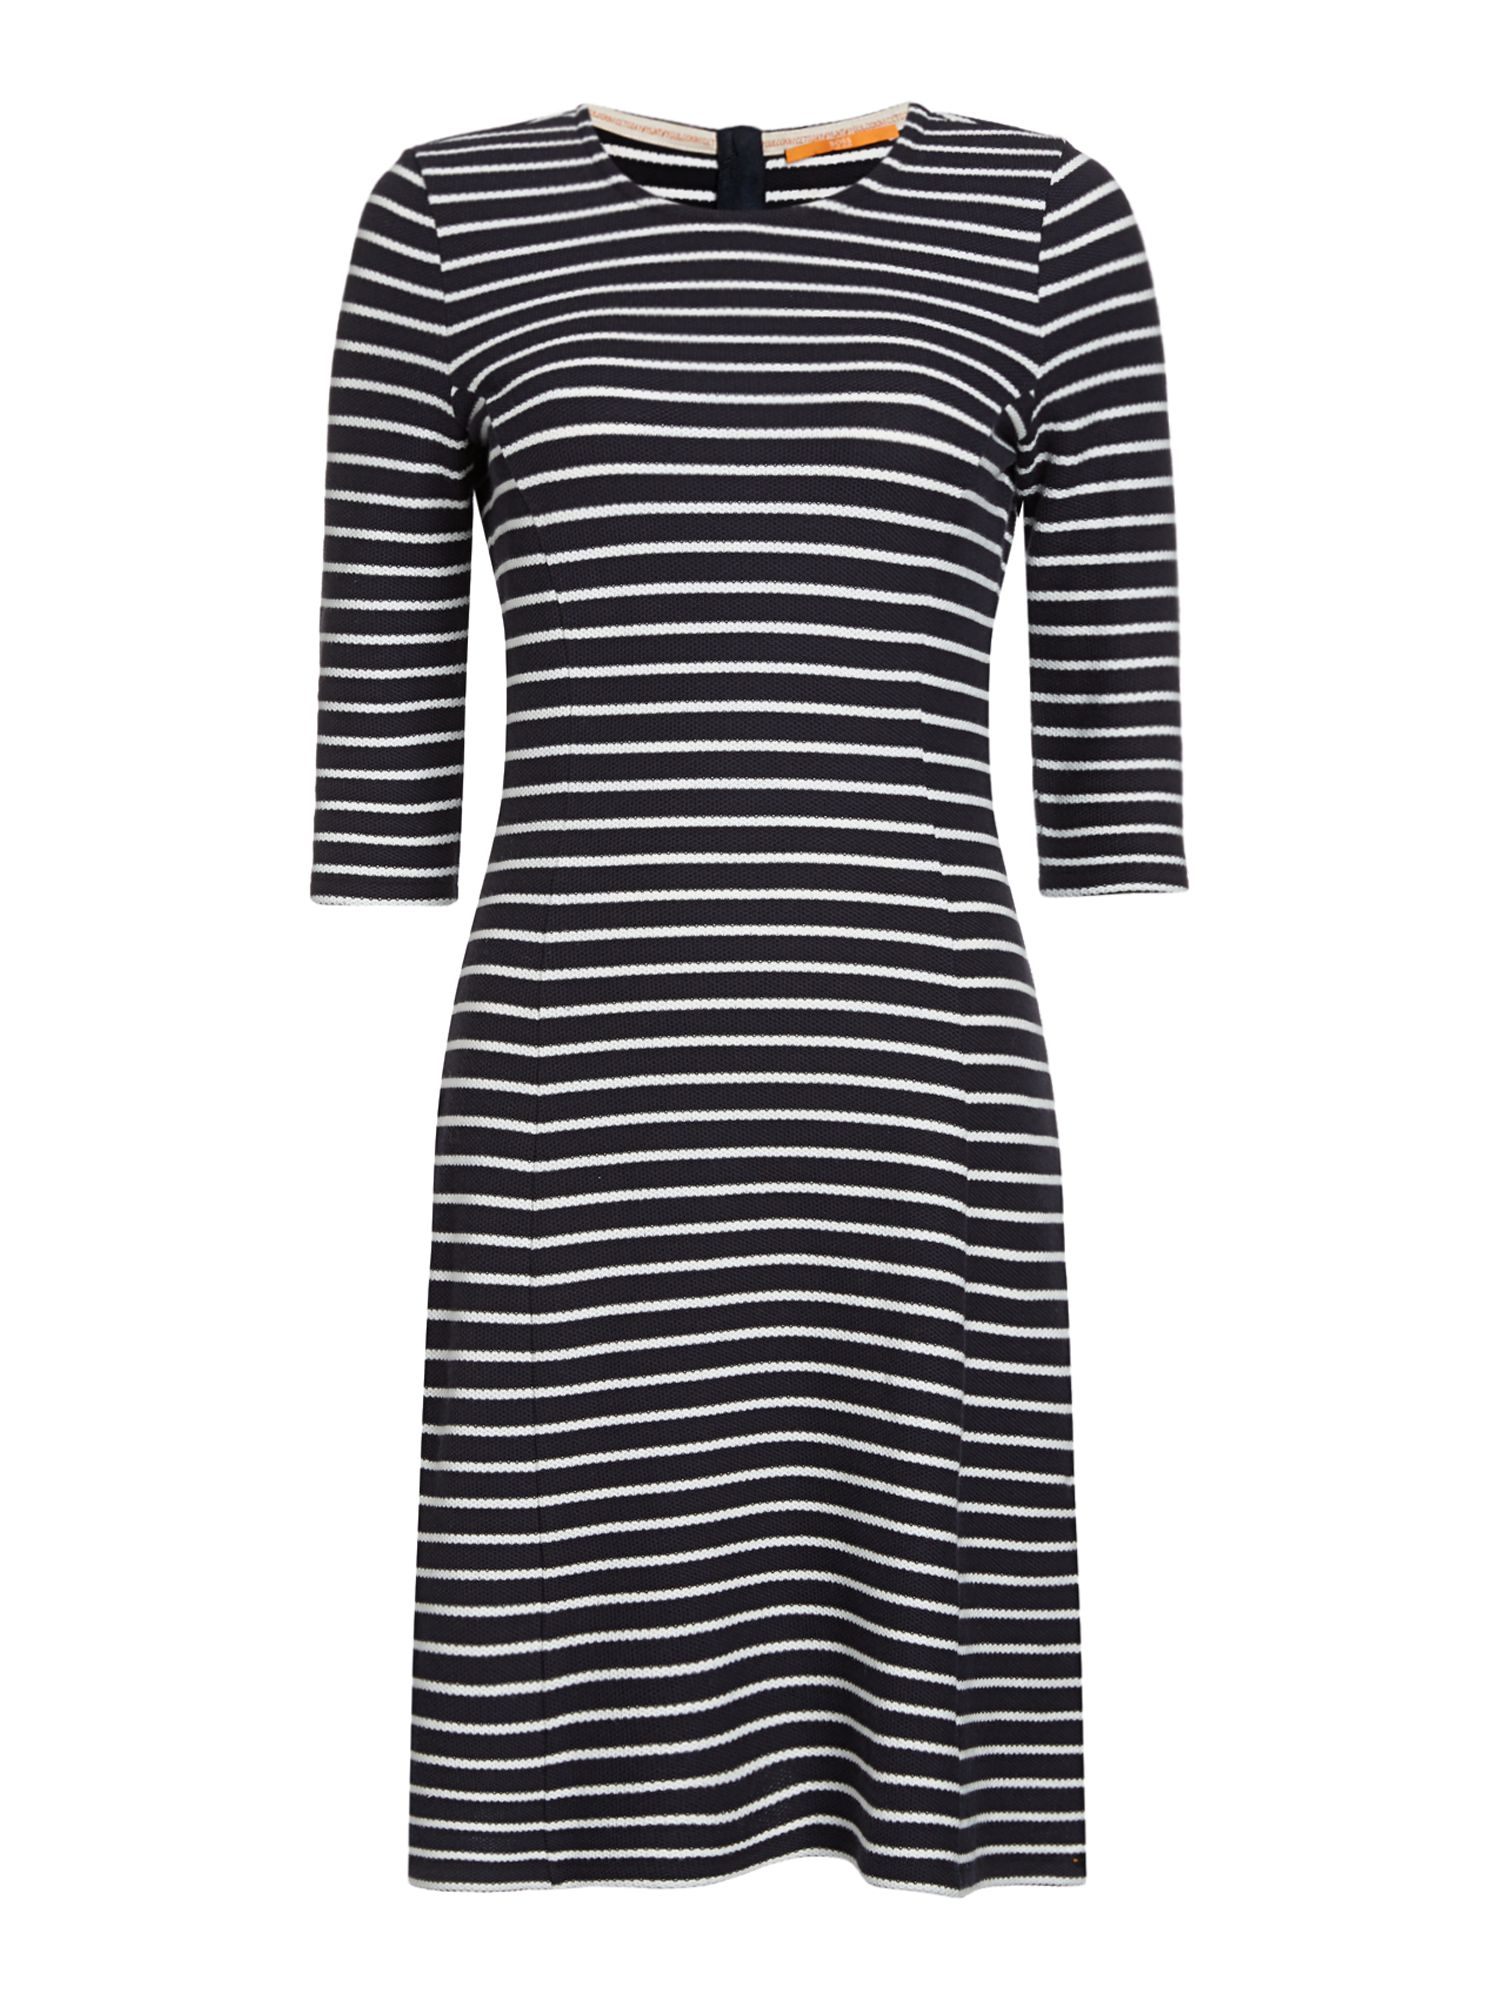 Hugo Boss Dressie 3/4 sleeve crew neck jersey dress, Blue